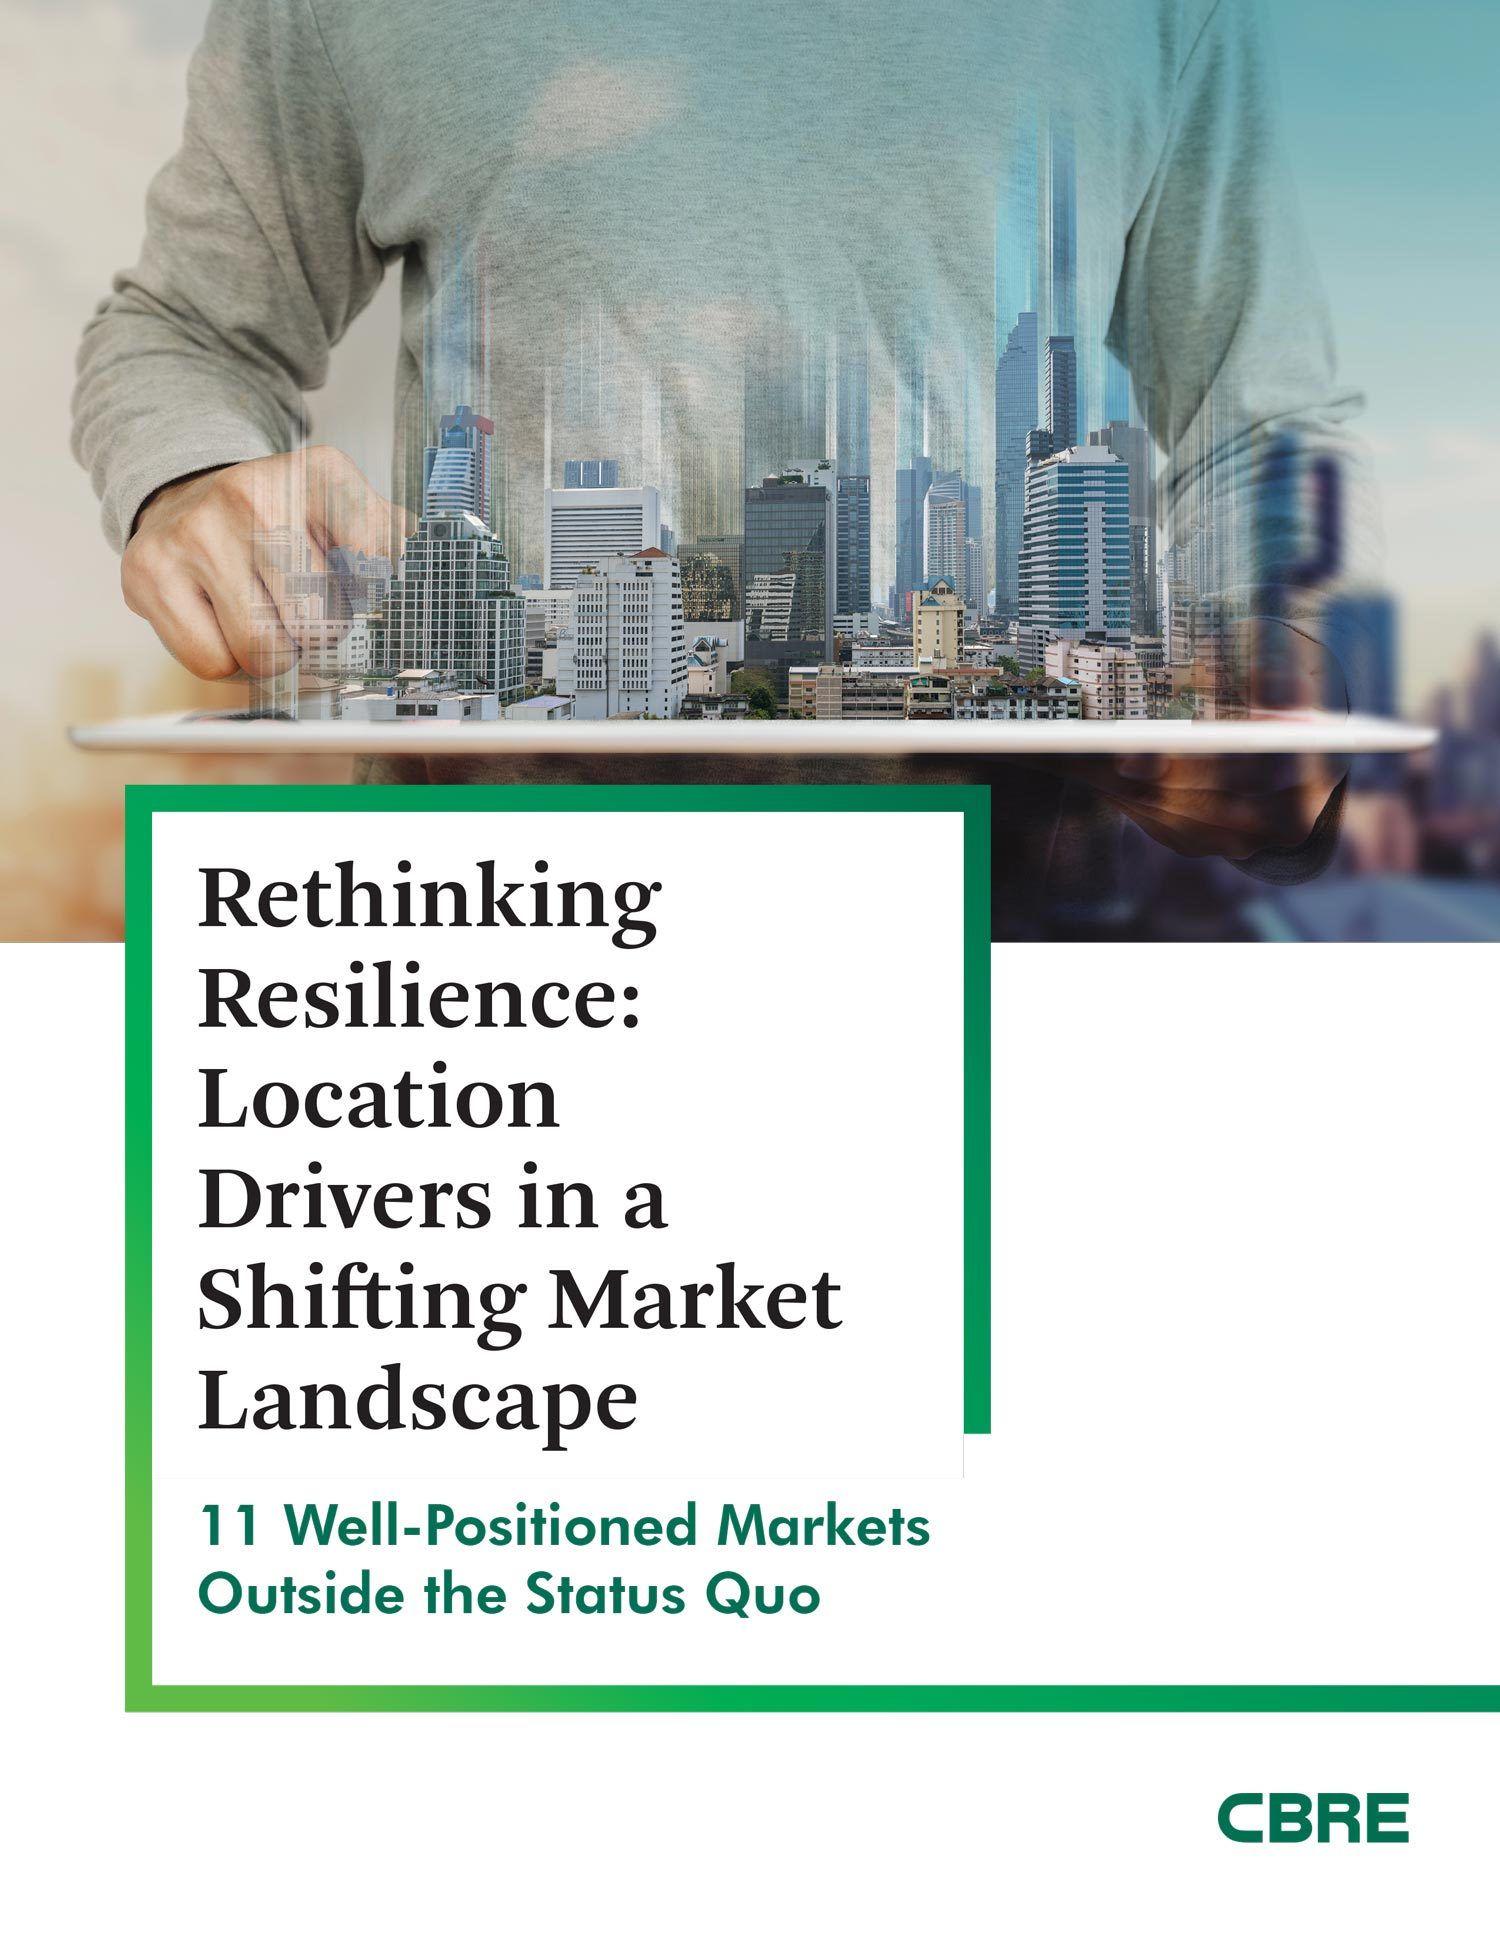 CBRE released a 2020 Location Study